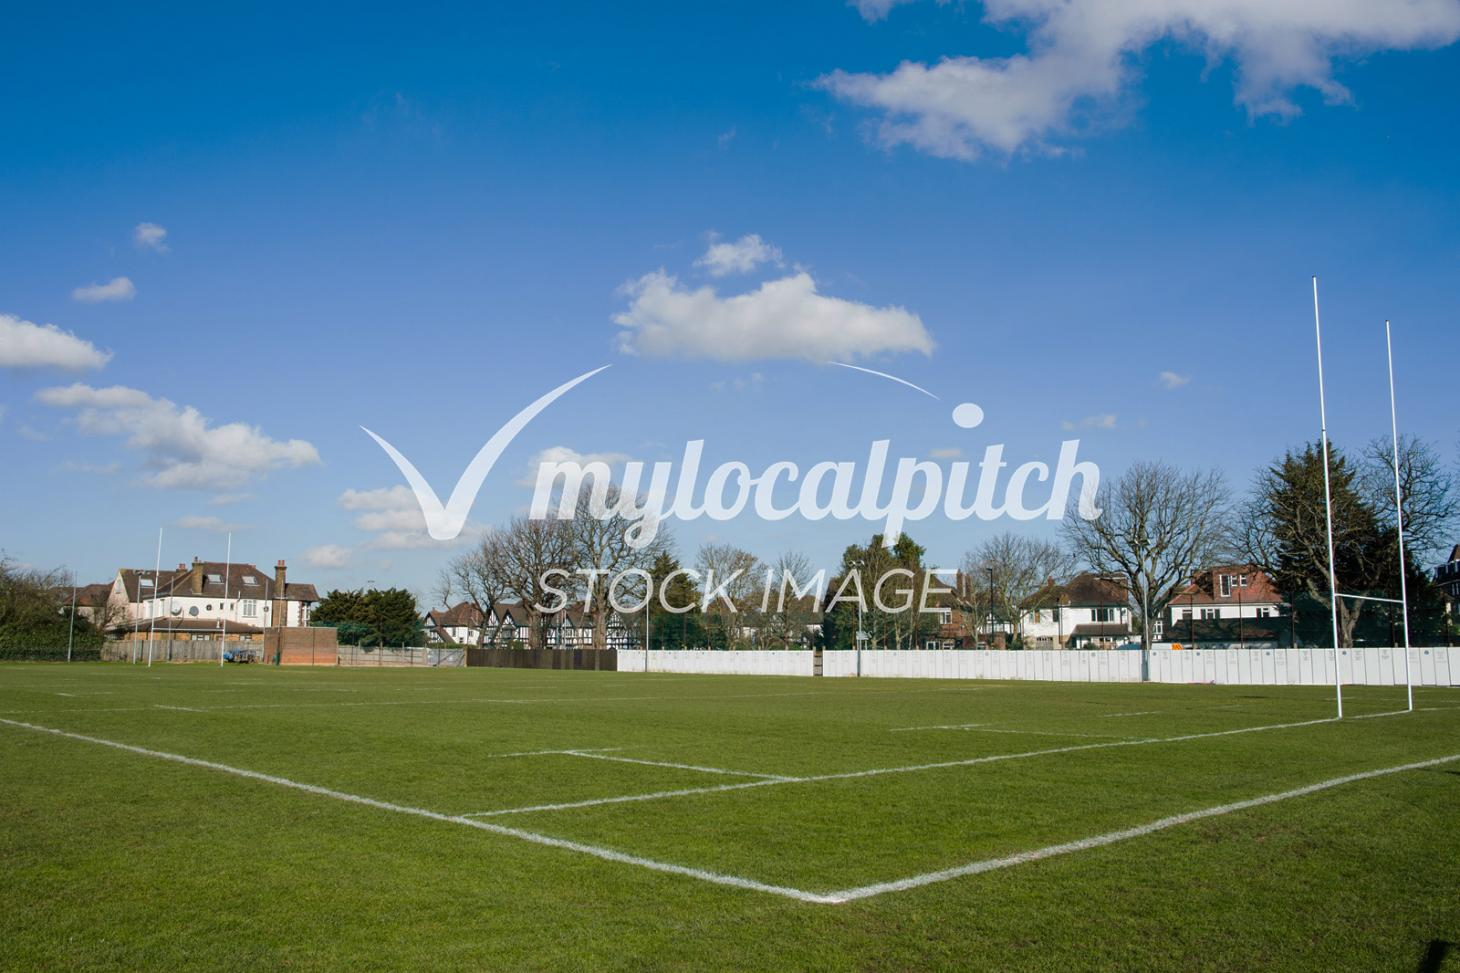 Eastbrook School Union | Grass rugby pitch